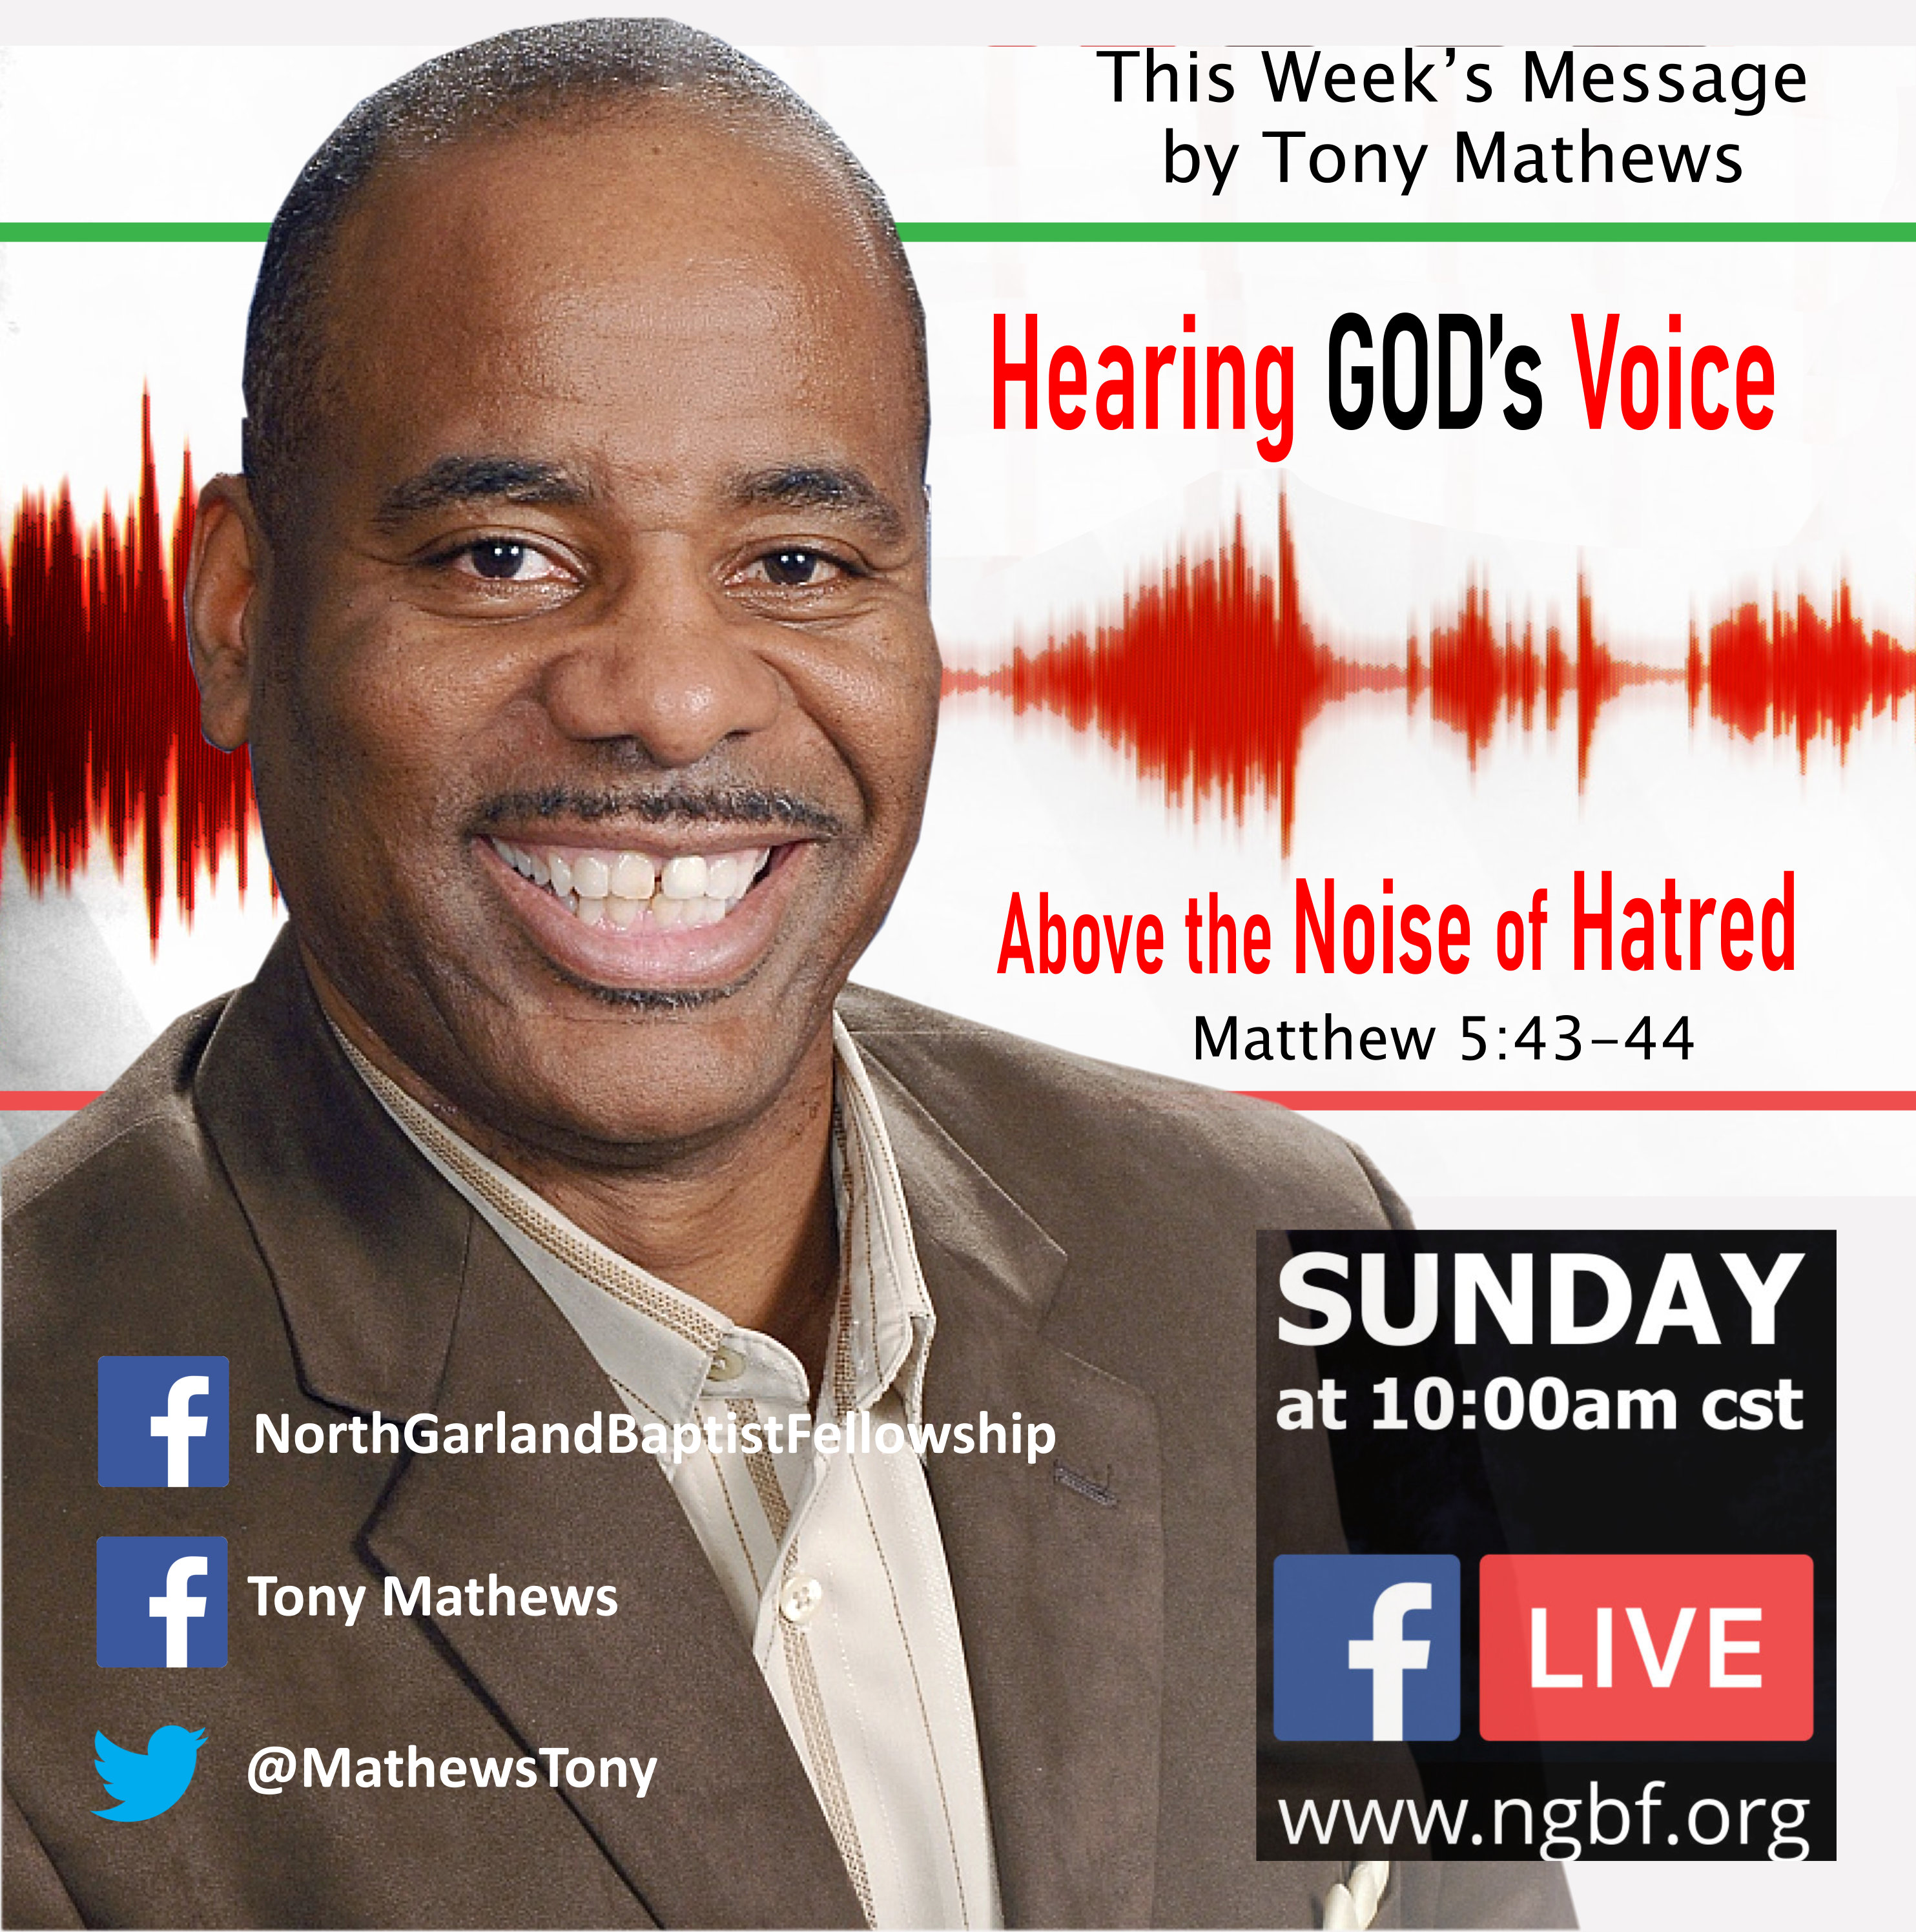 HEARING GOD'S VOICE ABOVE THE NOISE OF HATRED